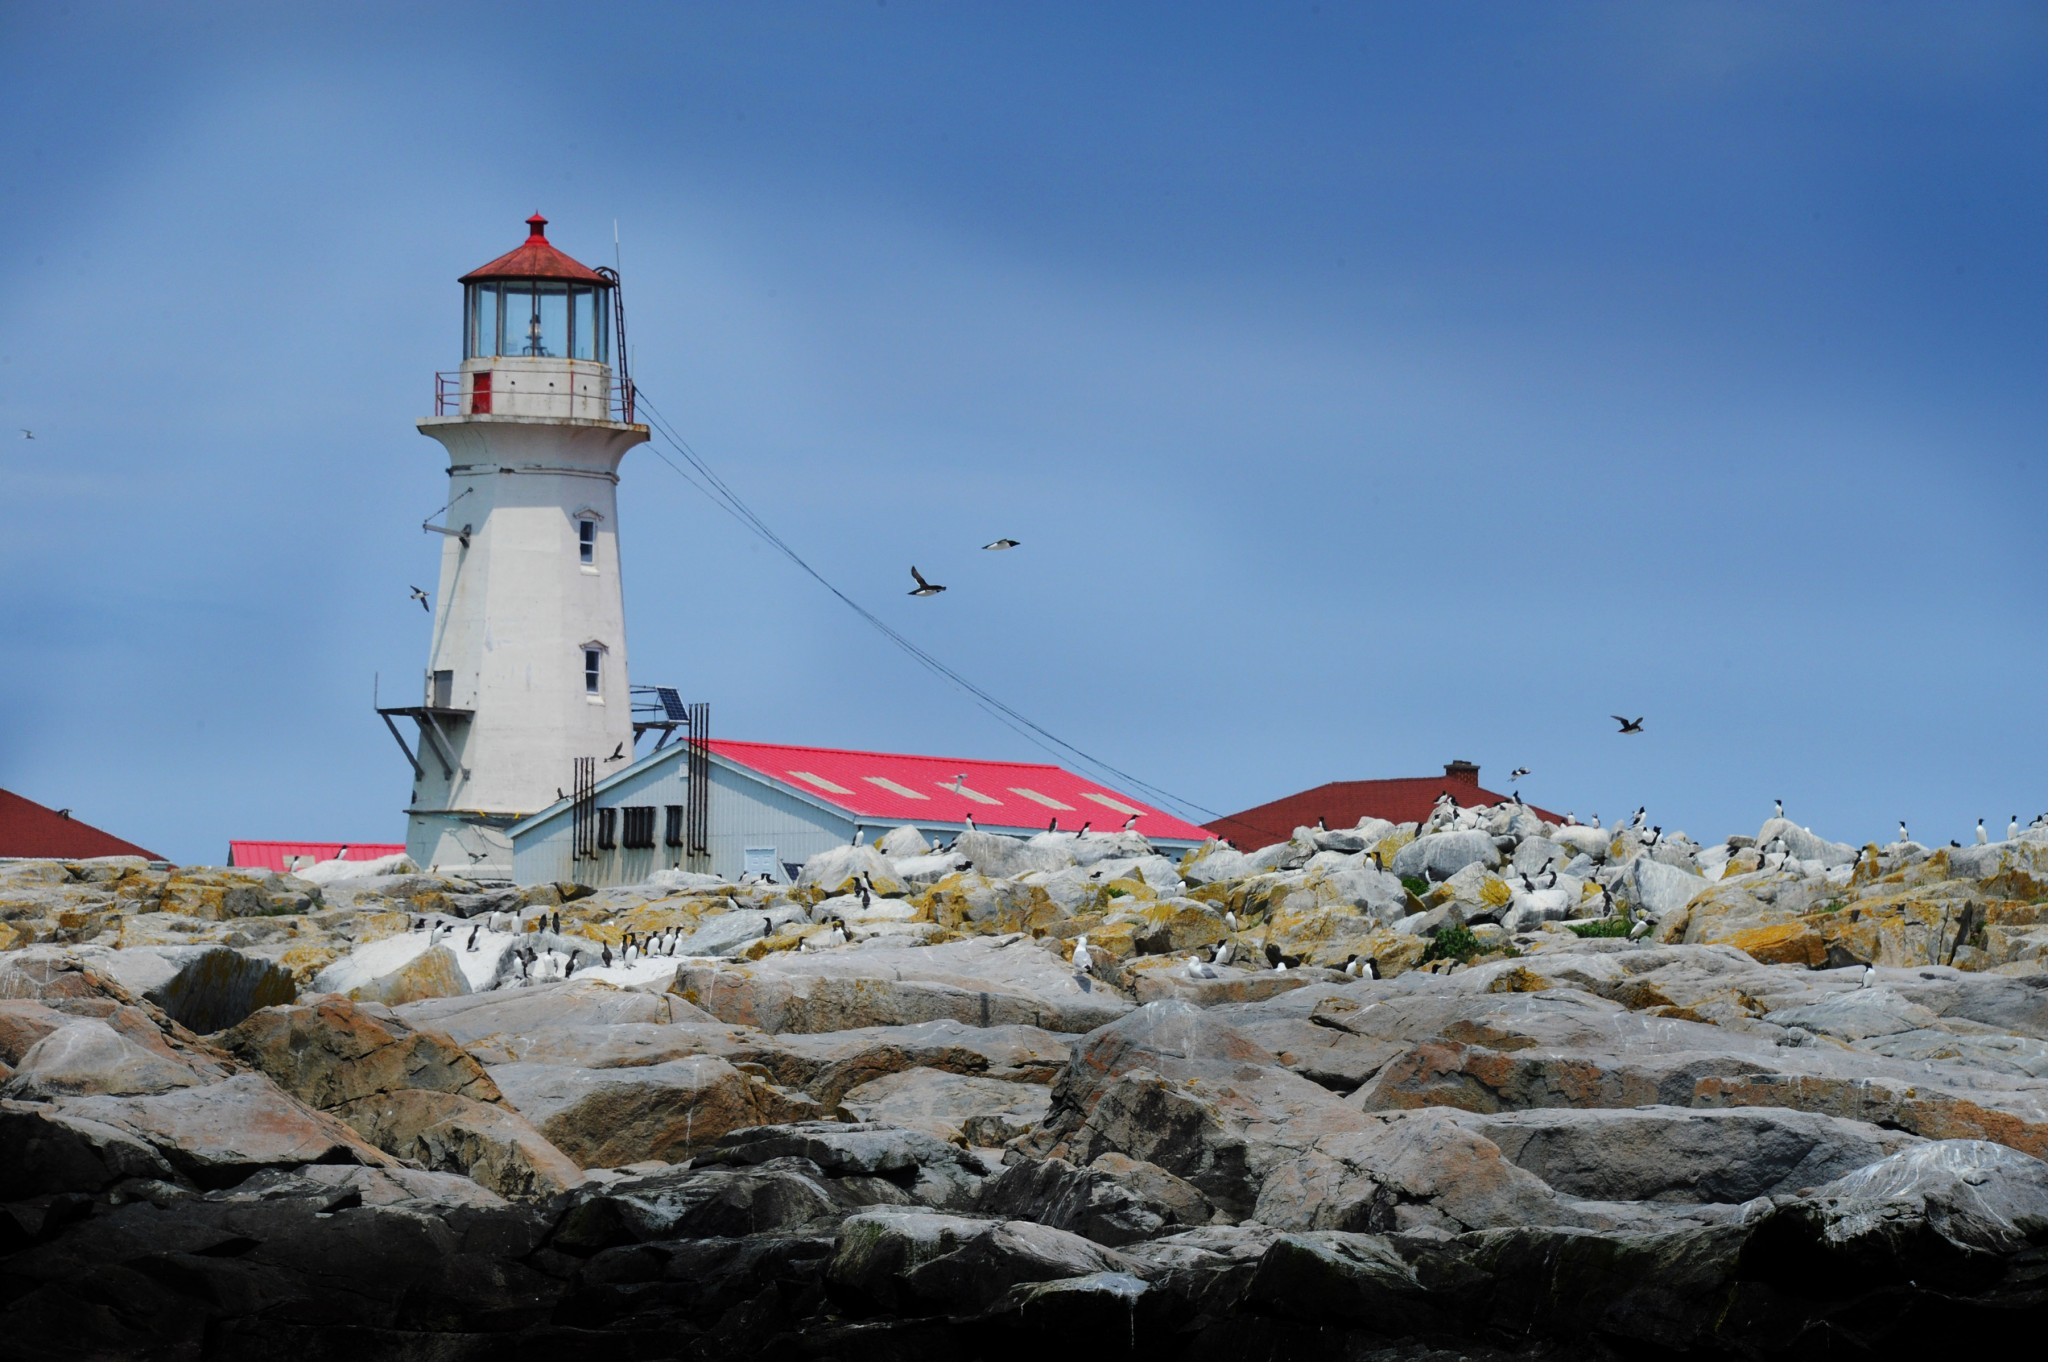 The historic Machias Seal Island light looms above the rugged rocky shore that the seabirds use. (Photo by Art Weber)